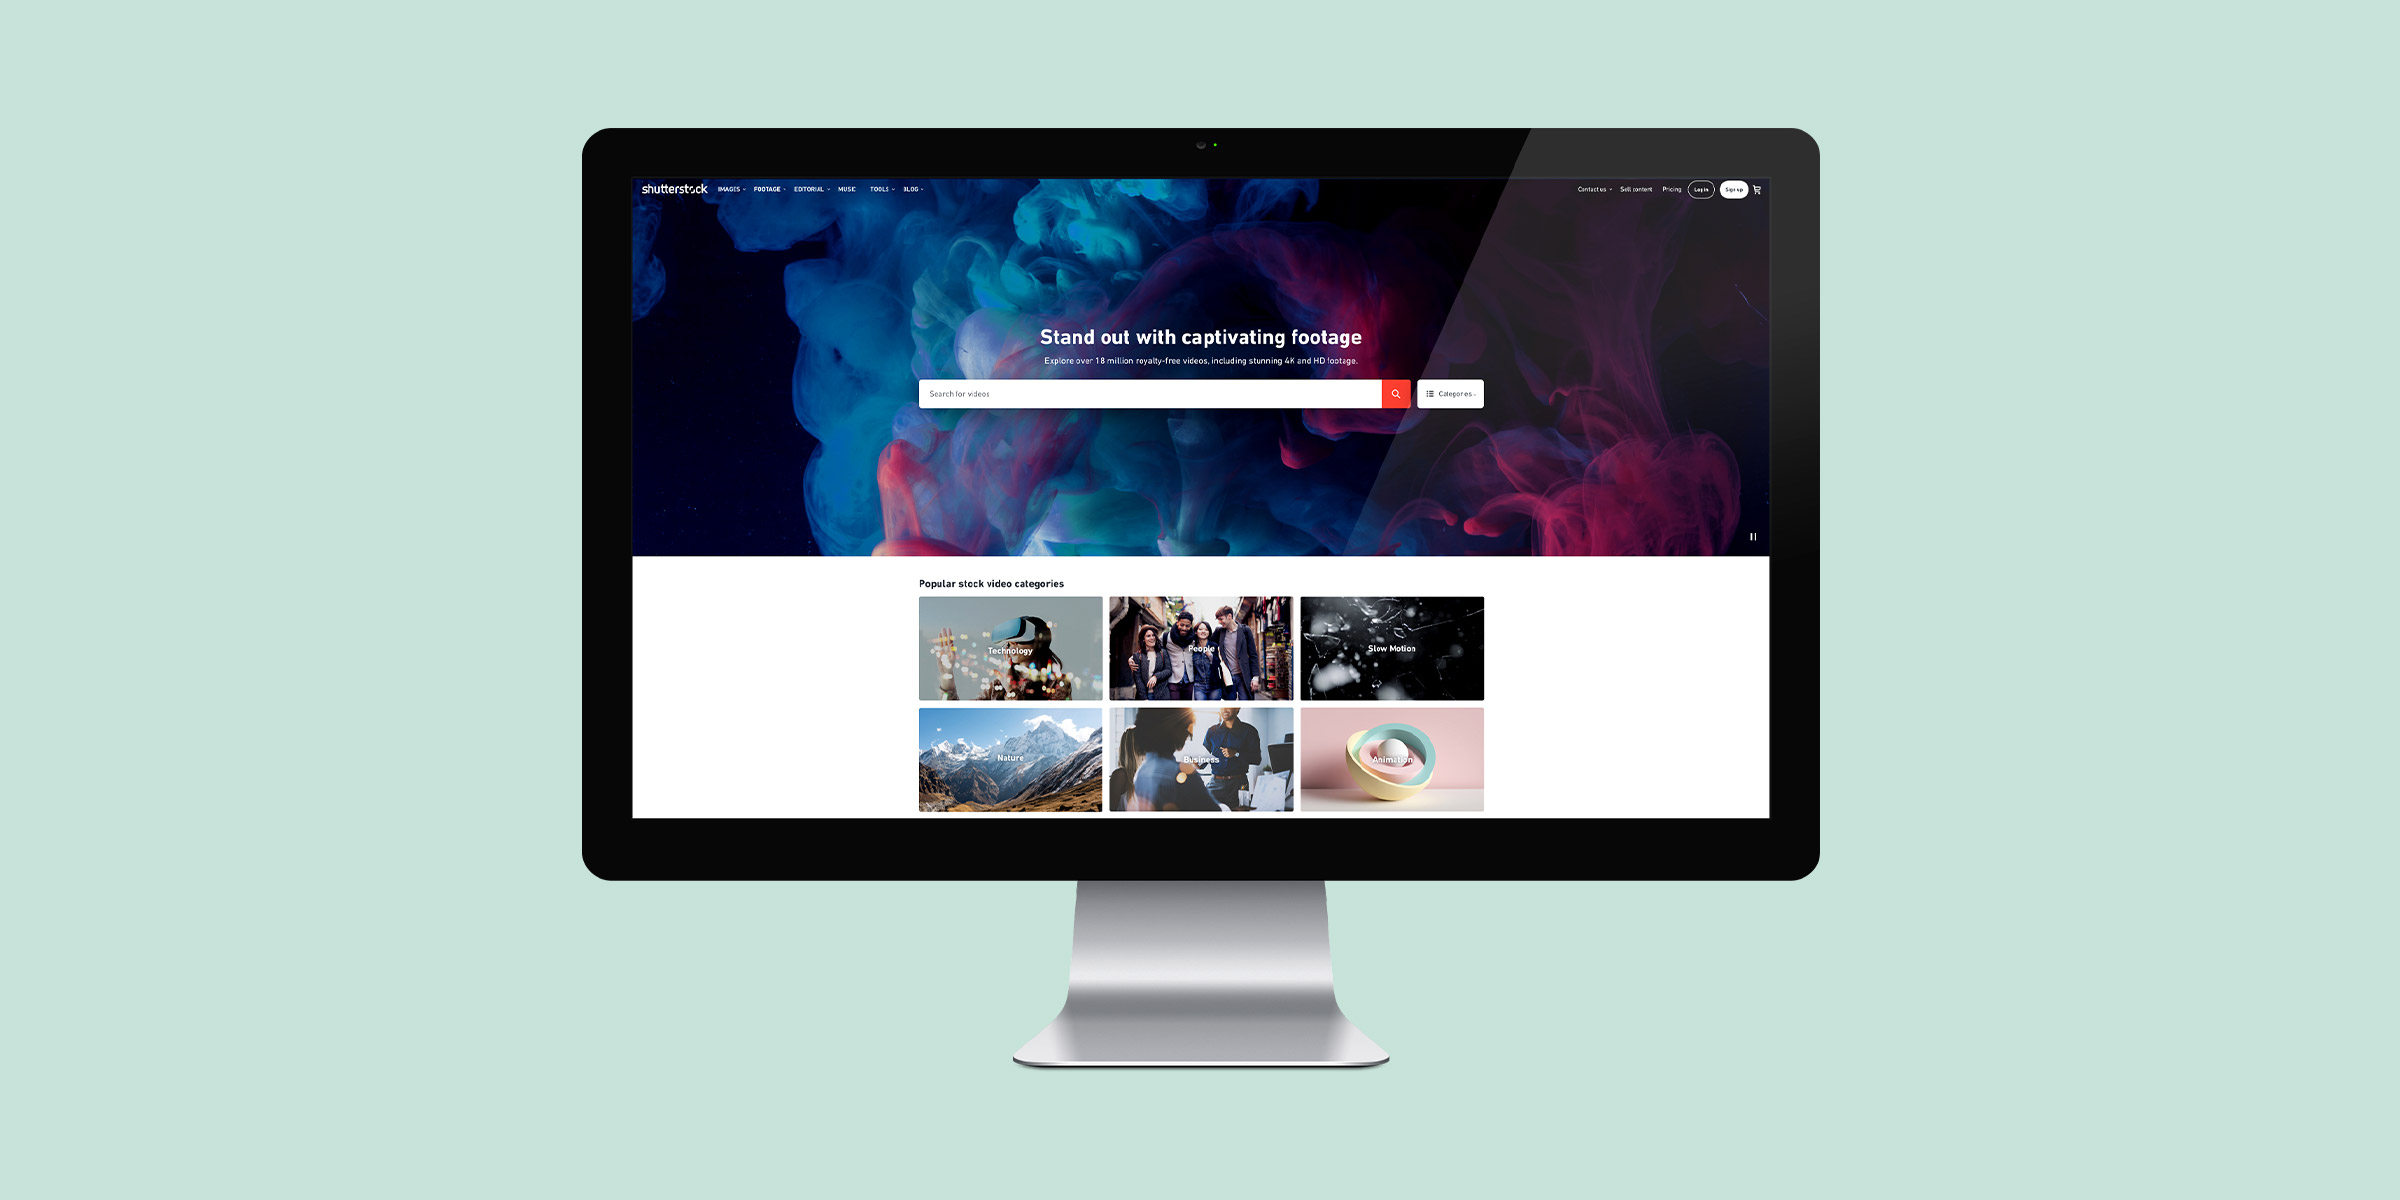 Header image for the Shutterstock Footage project, representing an iMac display on a pale green background, with the website homepage on screen.